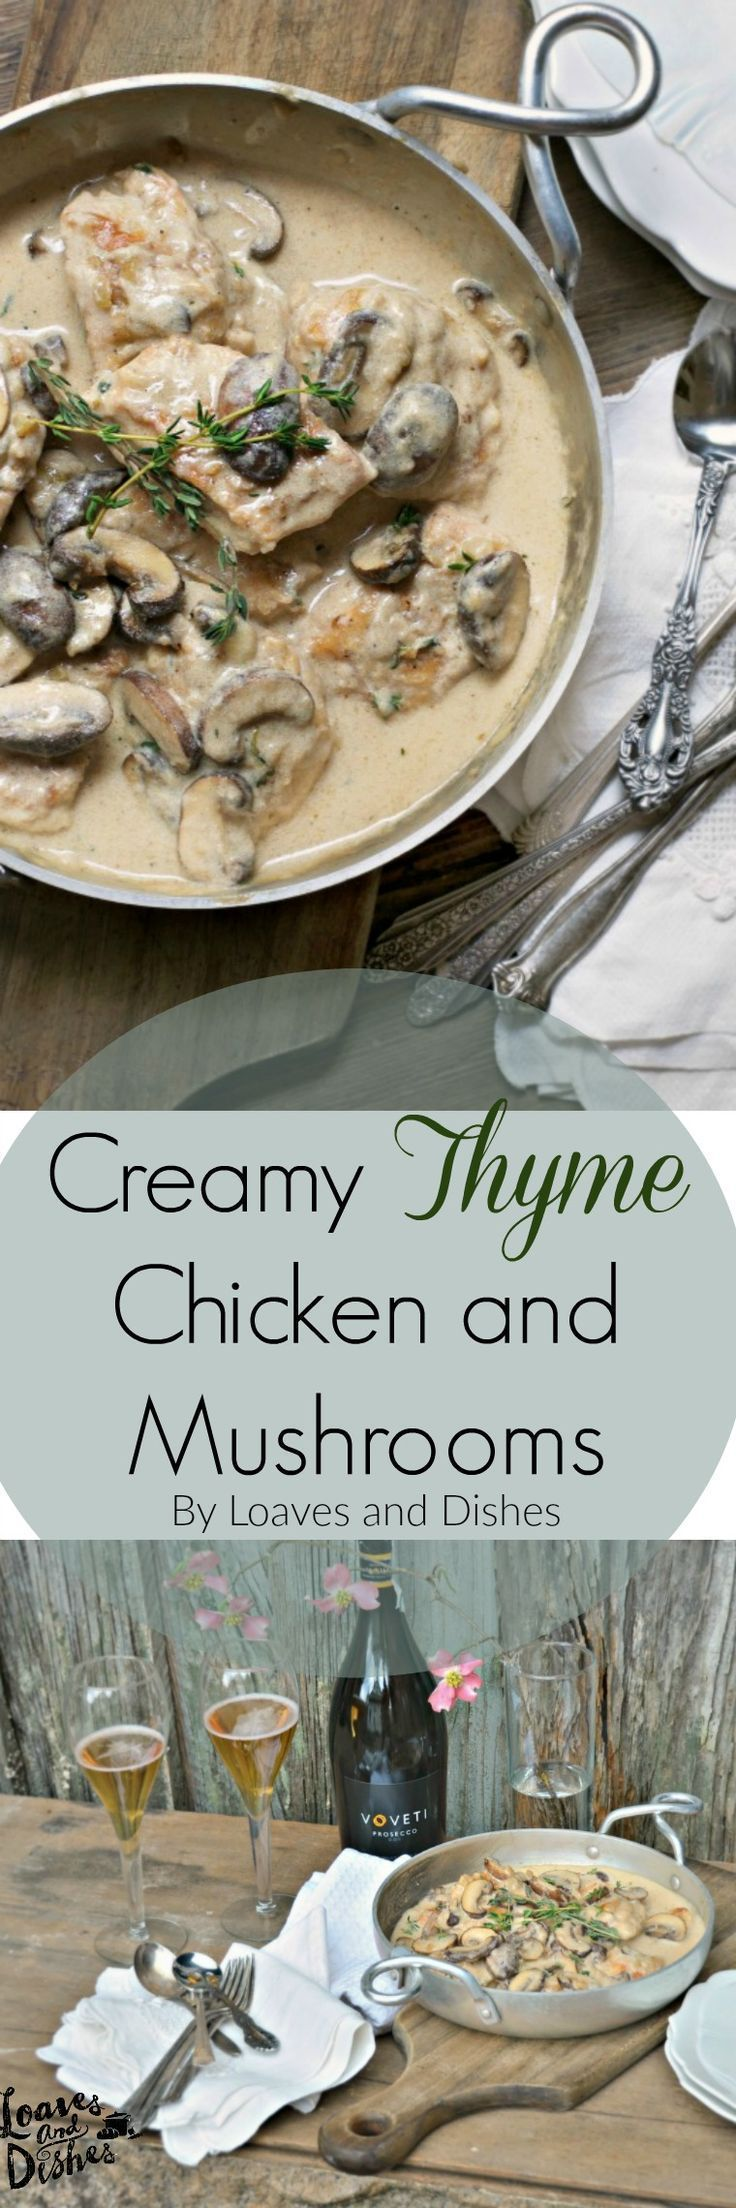 Easy and Fast upscale just for company dinner with chicken and mushrooms #VOVETI #CleverGirls #ad